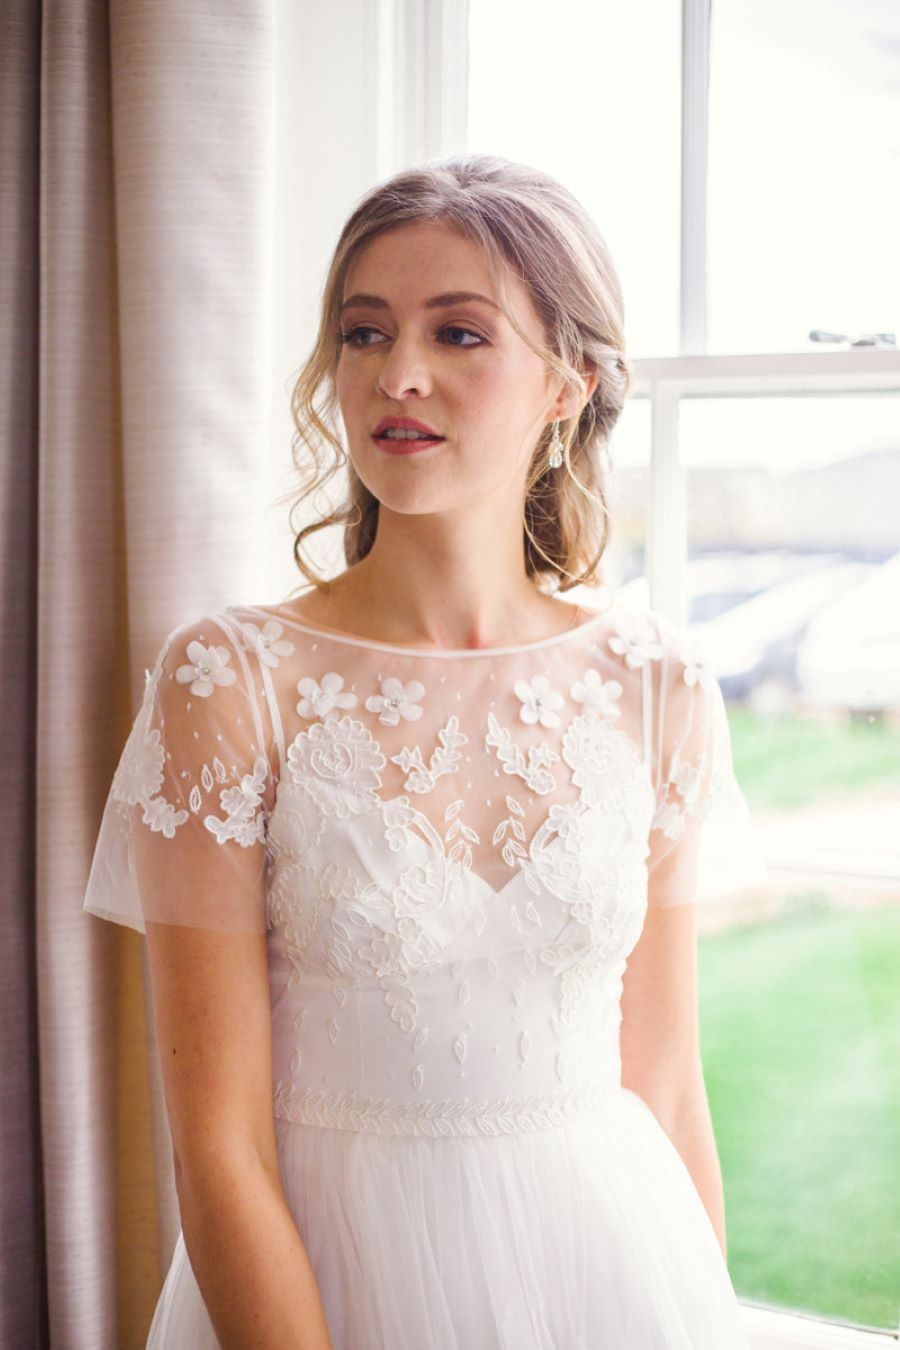 Light and romance with natural blush tones - wedding ideas from Downham Hall. Photographer credit Magical Moments Photography (12)